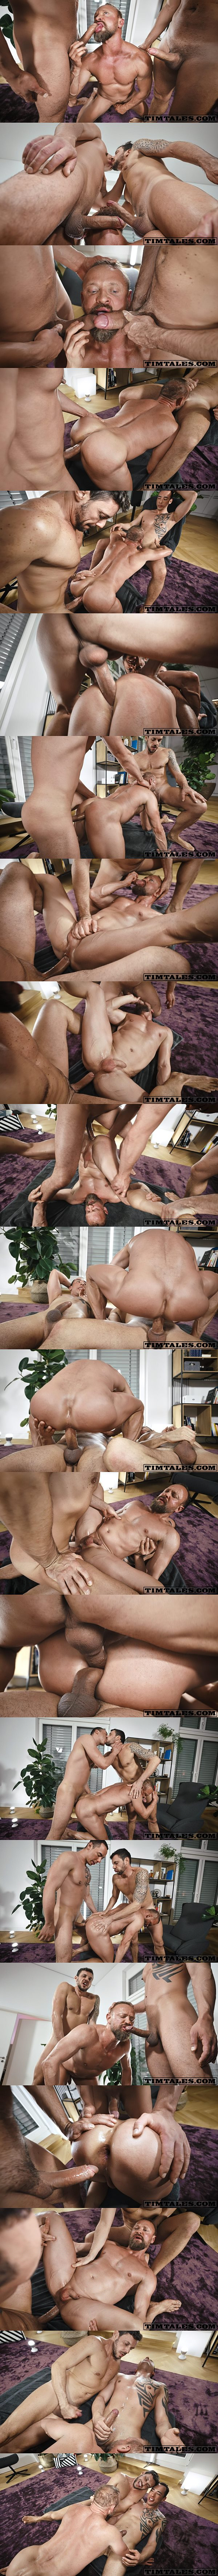 Hung tops Gaucho and Tian Tao tag team and double penetrate muscle daddy Guido Stahl in a raw interracial threesome in Guido's bottoming debut at Timtales 01